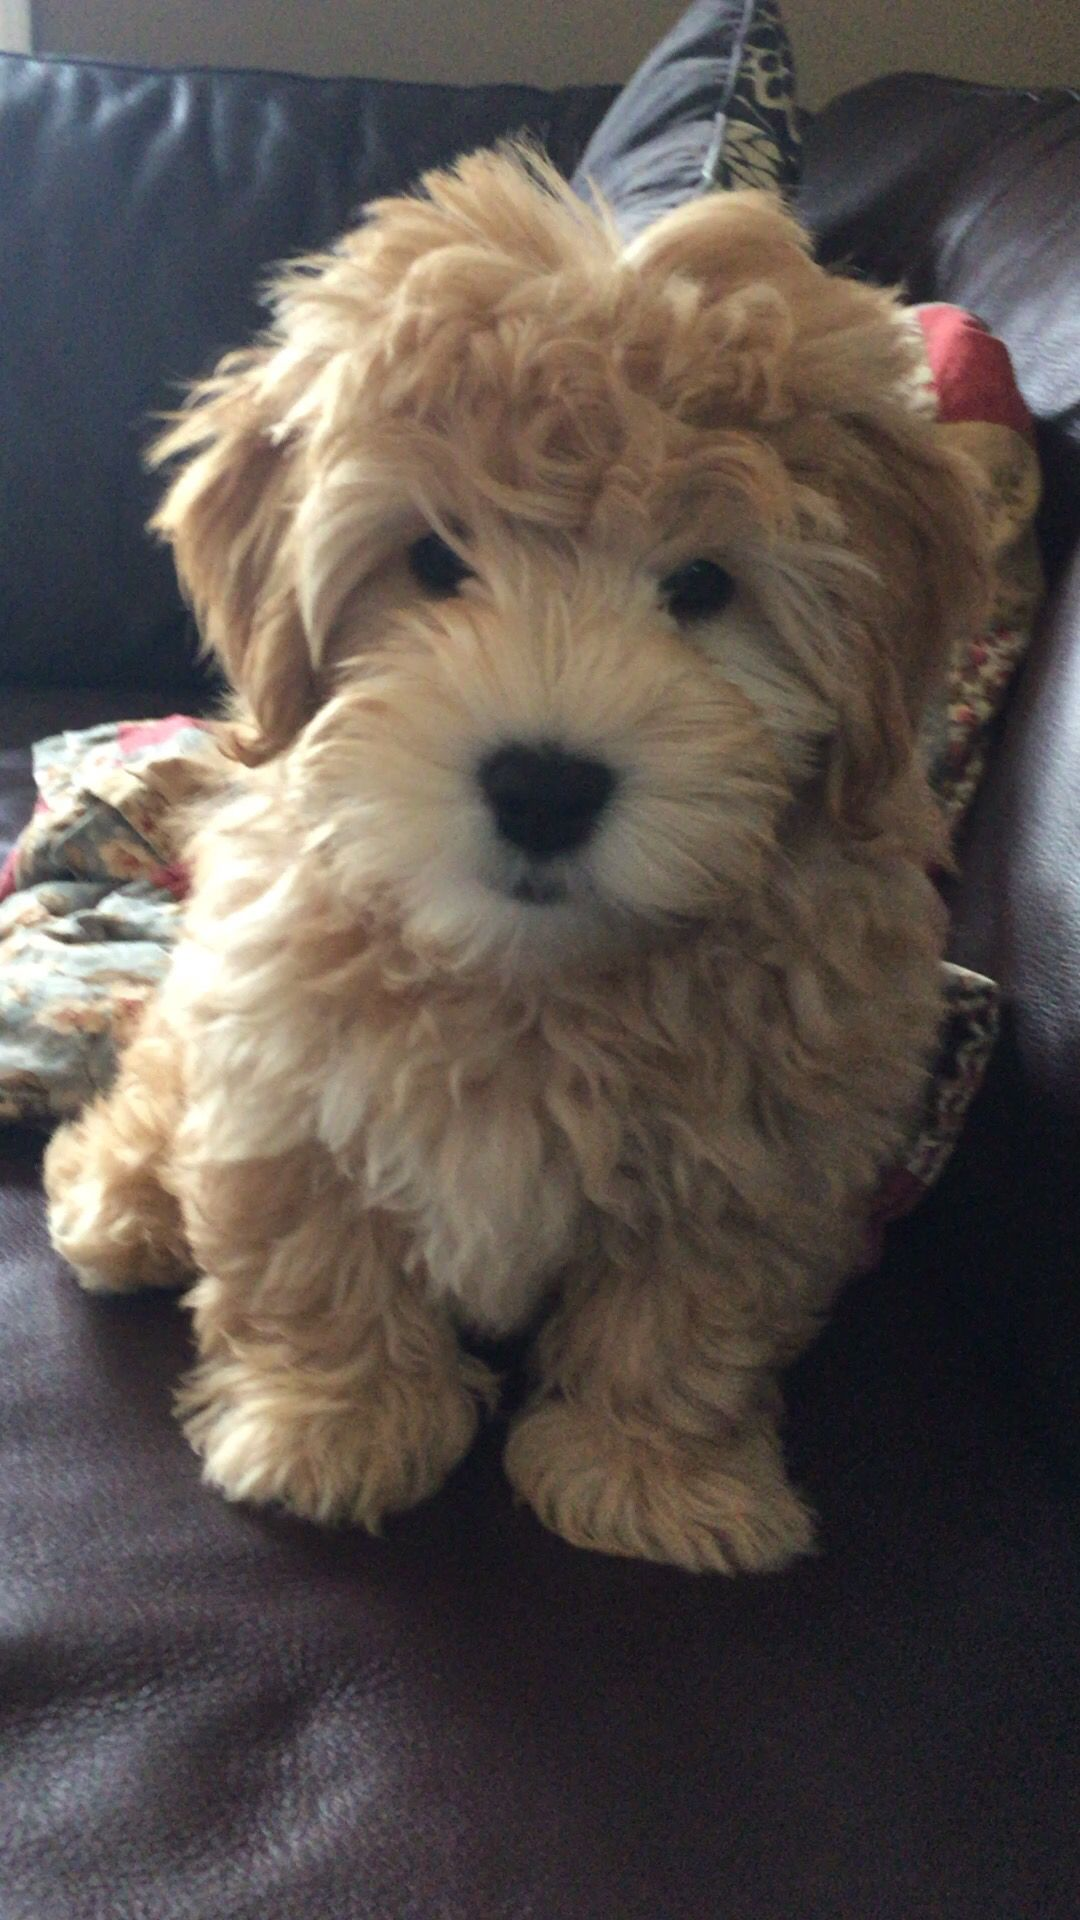 Charlie is a 3 month old Mini Whoodle (Wheaten Terrier